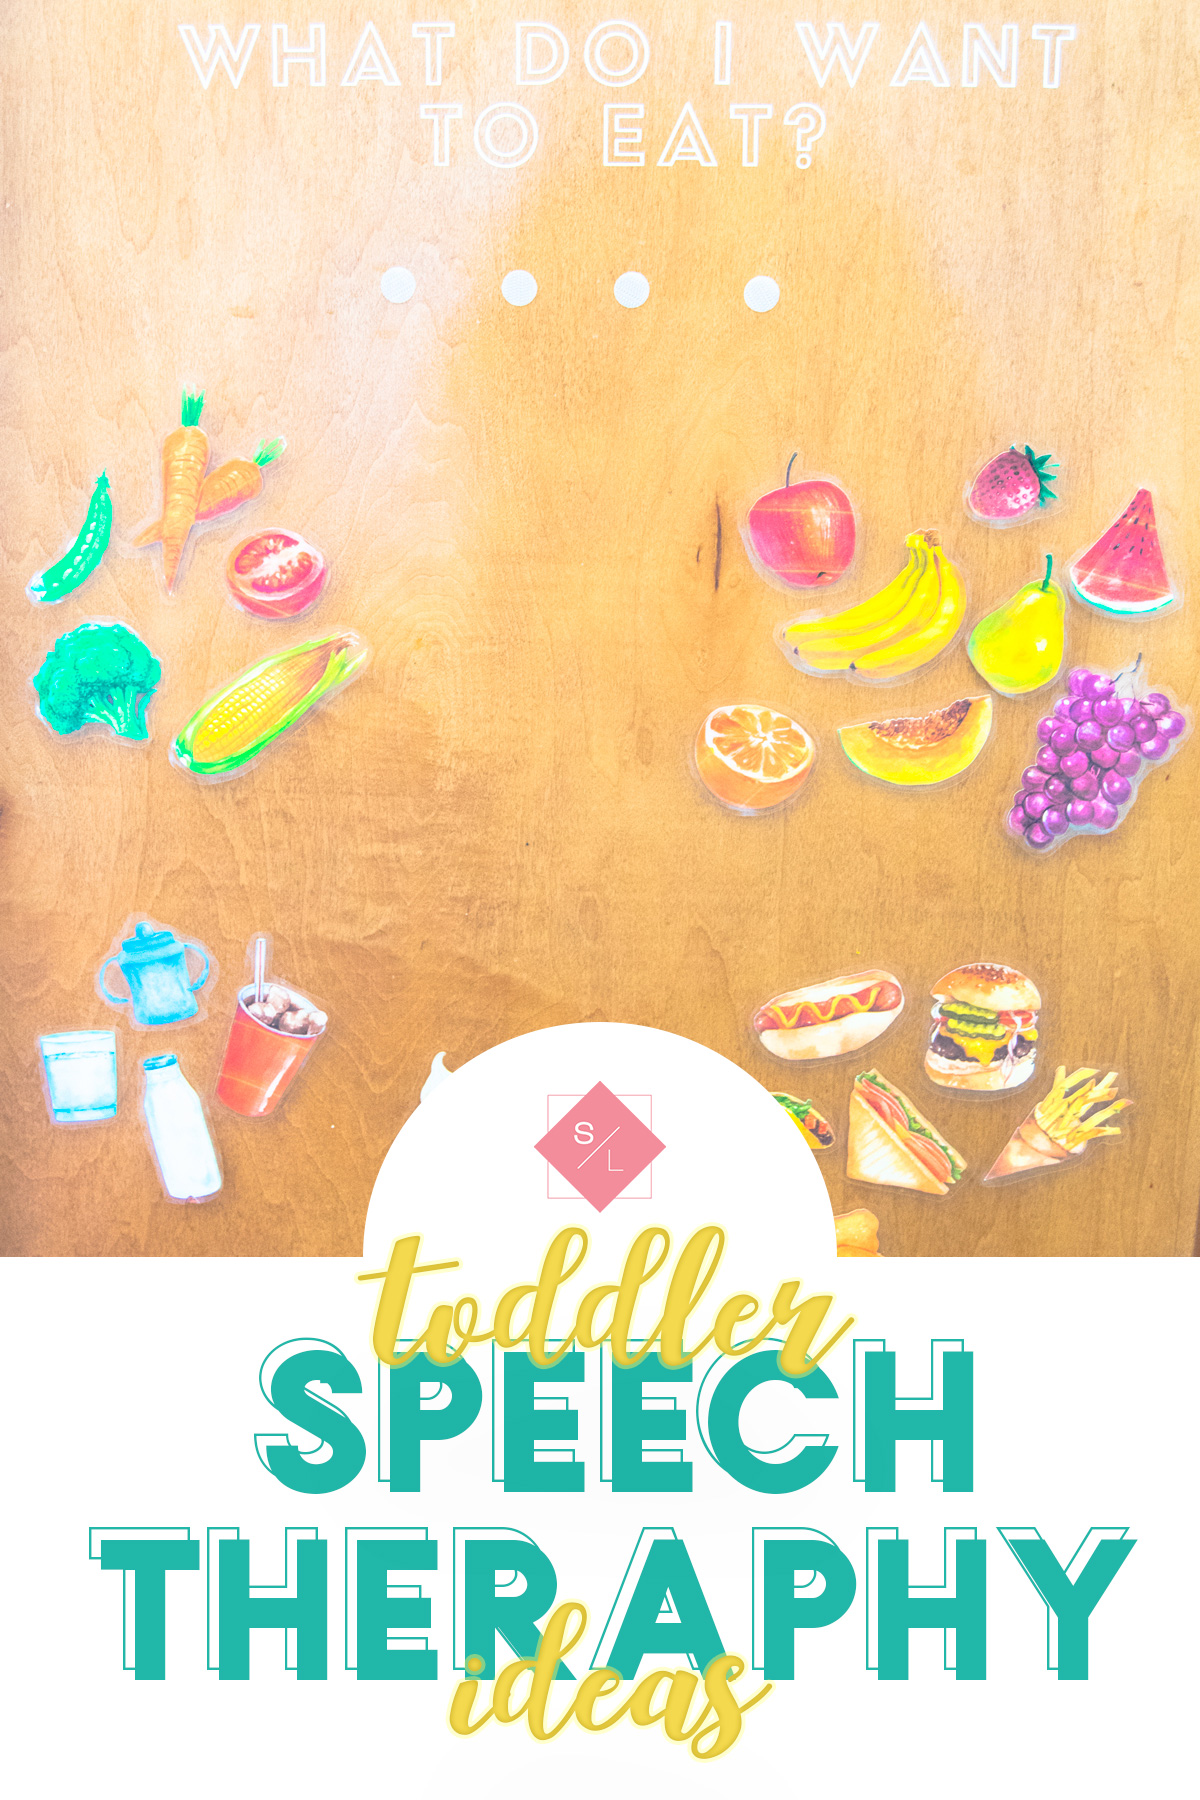 Use this toddler speech therapy activity to help toddlers learn food and ways they can start talking. #speechtherapy #toddlertherapy